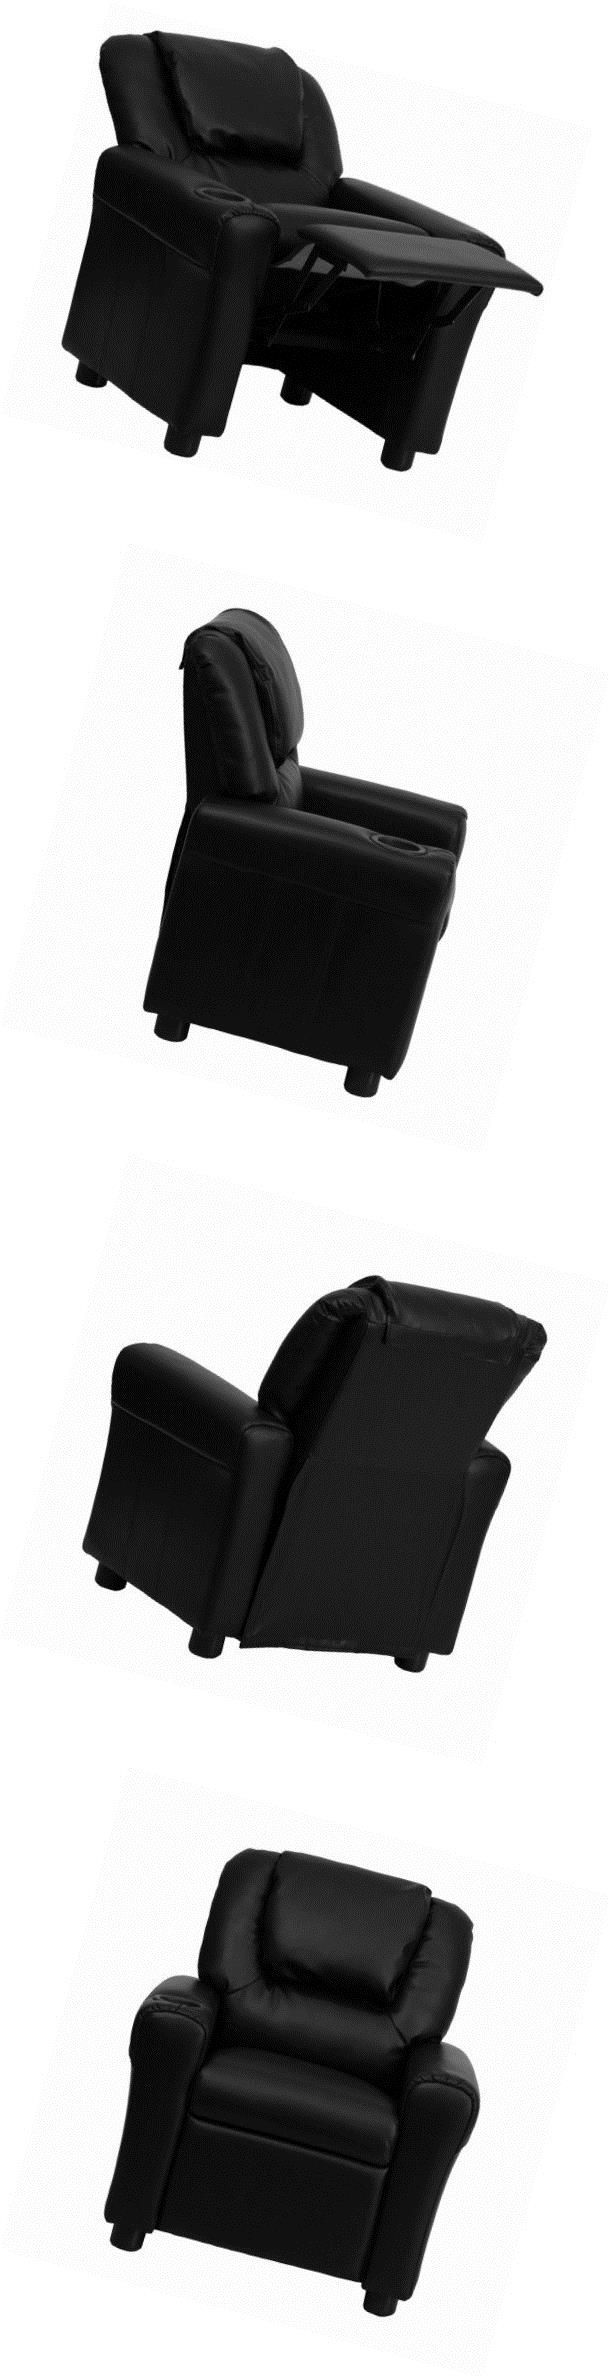 Sofas and Armchairs 134648: Flash Furniture Dg-Ult-Kid-Bk-Gg Contemporary Black Vinyl Kids Recliner With Cup -> BUY IT NOW ONLY: $79.21 on eBay!